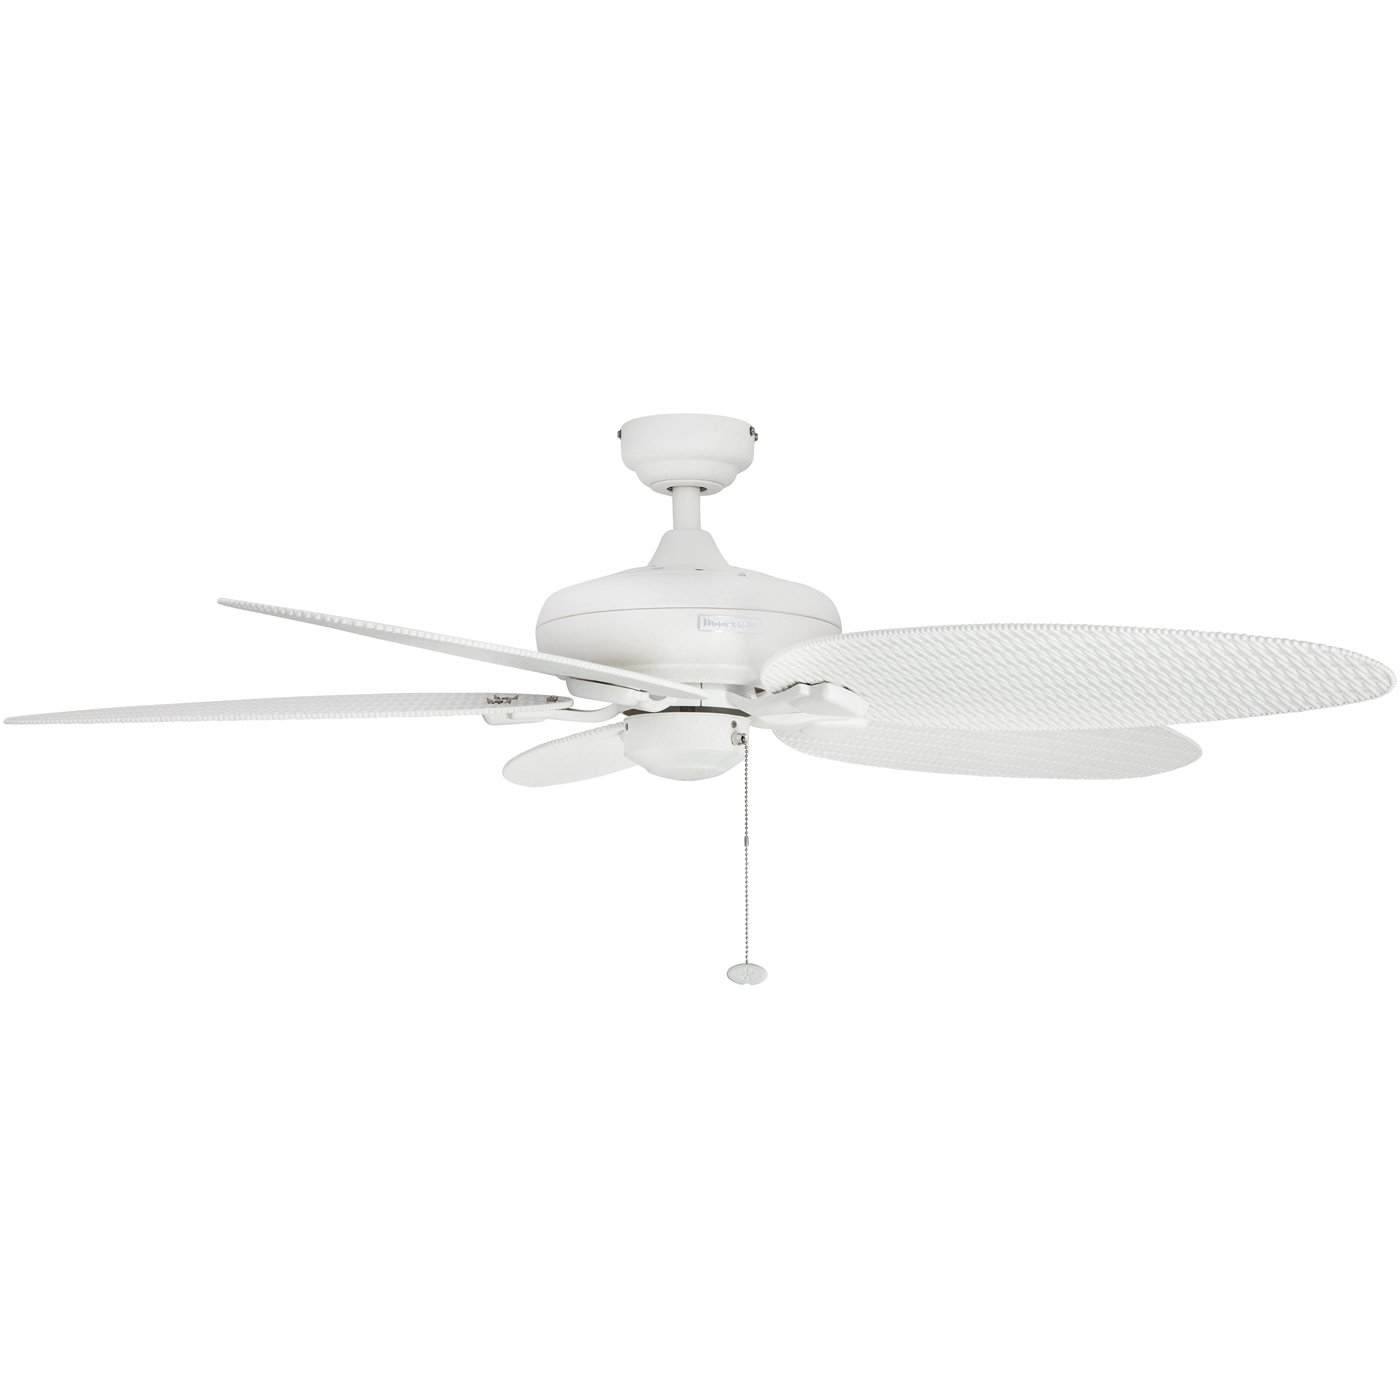 Honeywell Duvall 52-Inch Tropical Ceiling Fan, Five Wet Rated Wicker Blades, Indoor/Outdoor, White by Honeywell Ceiling Fans (Image #4)